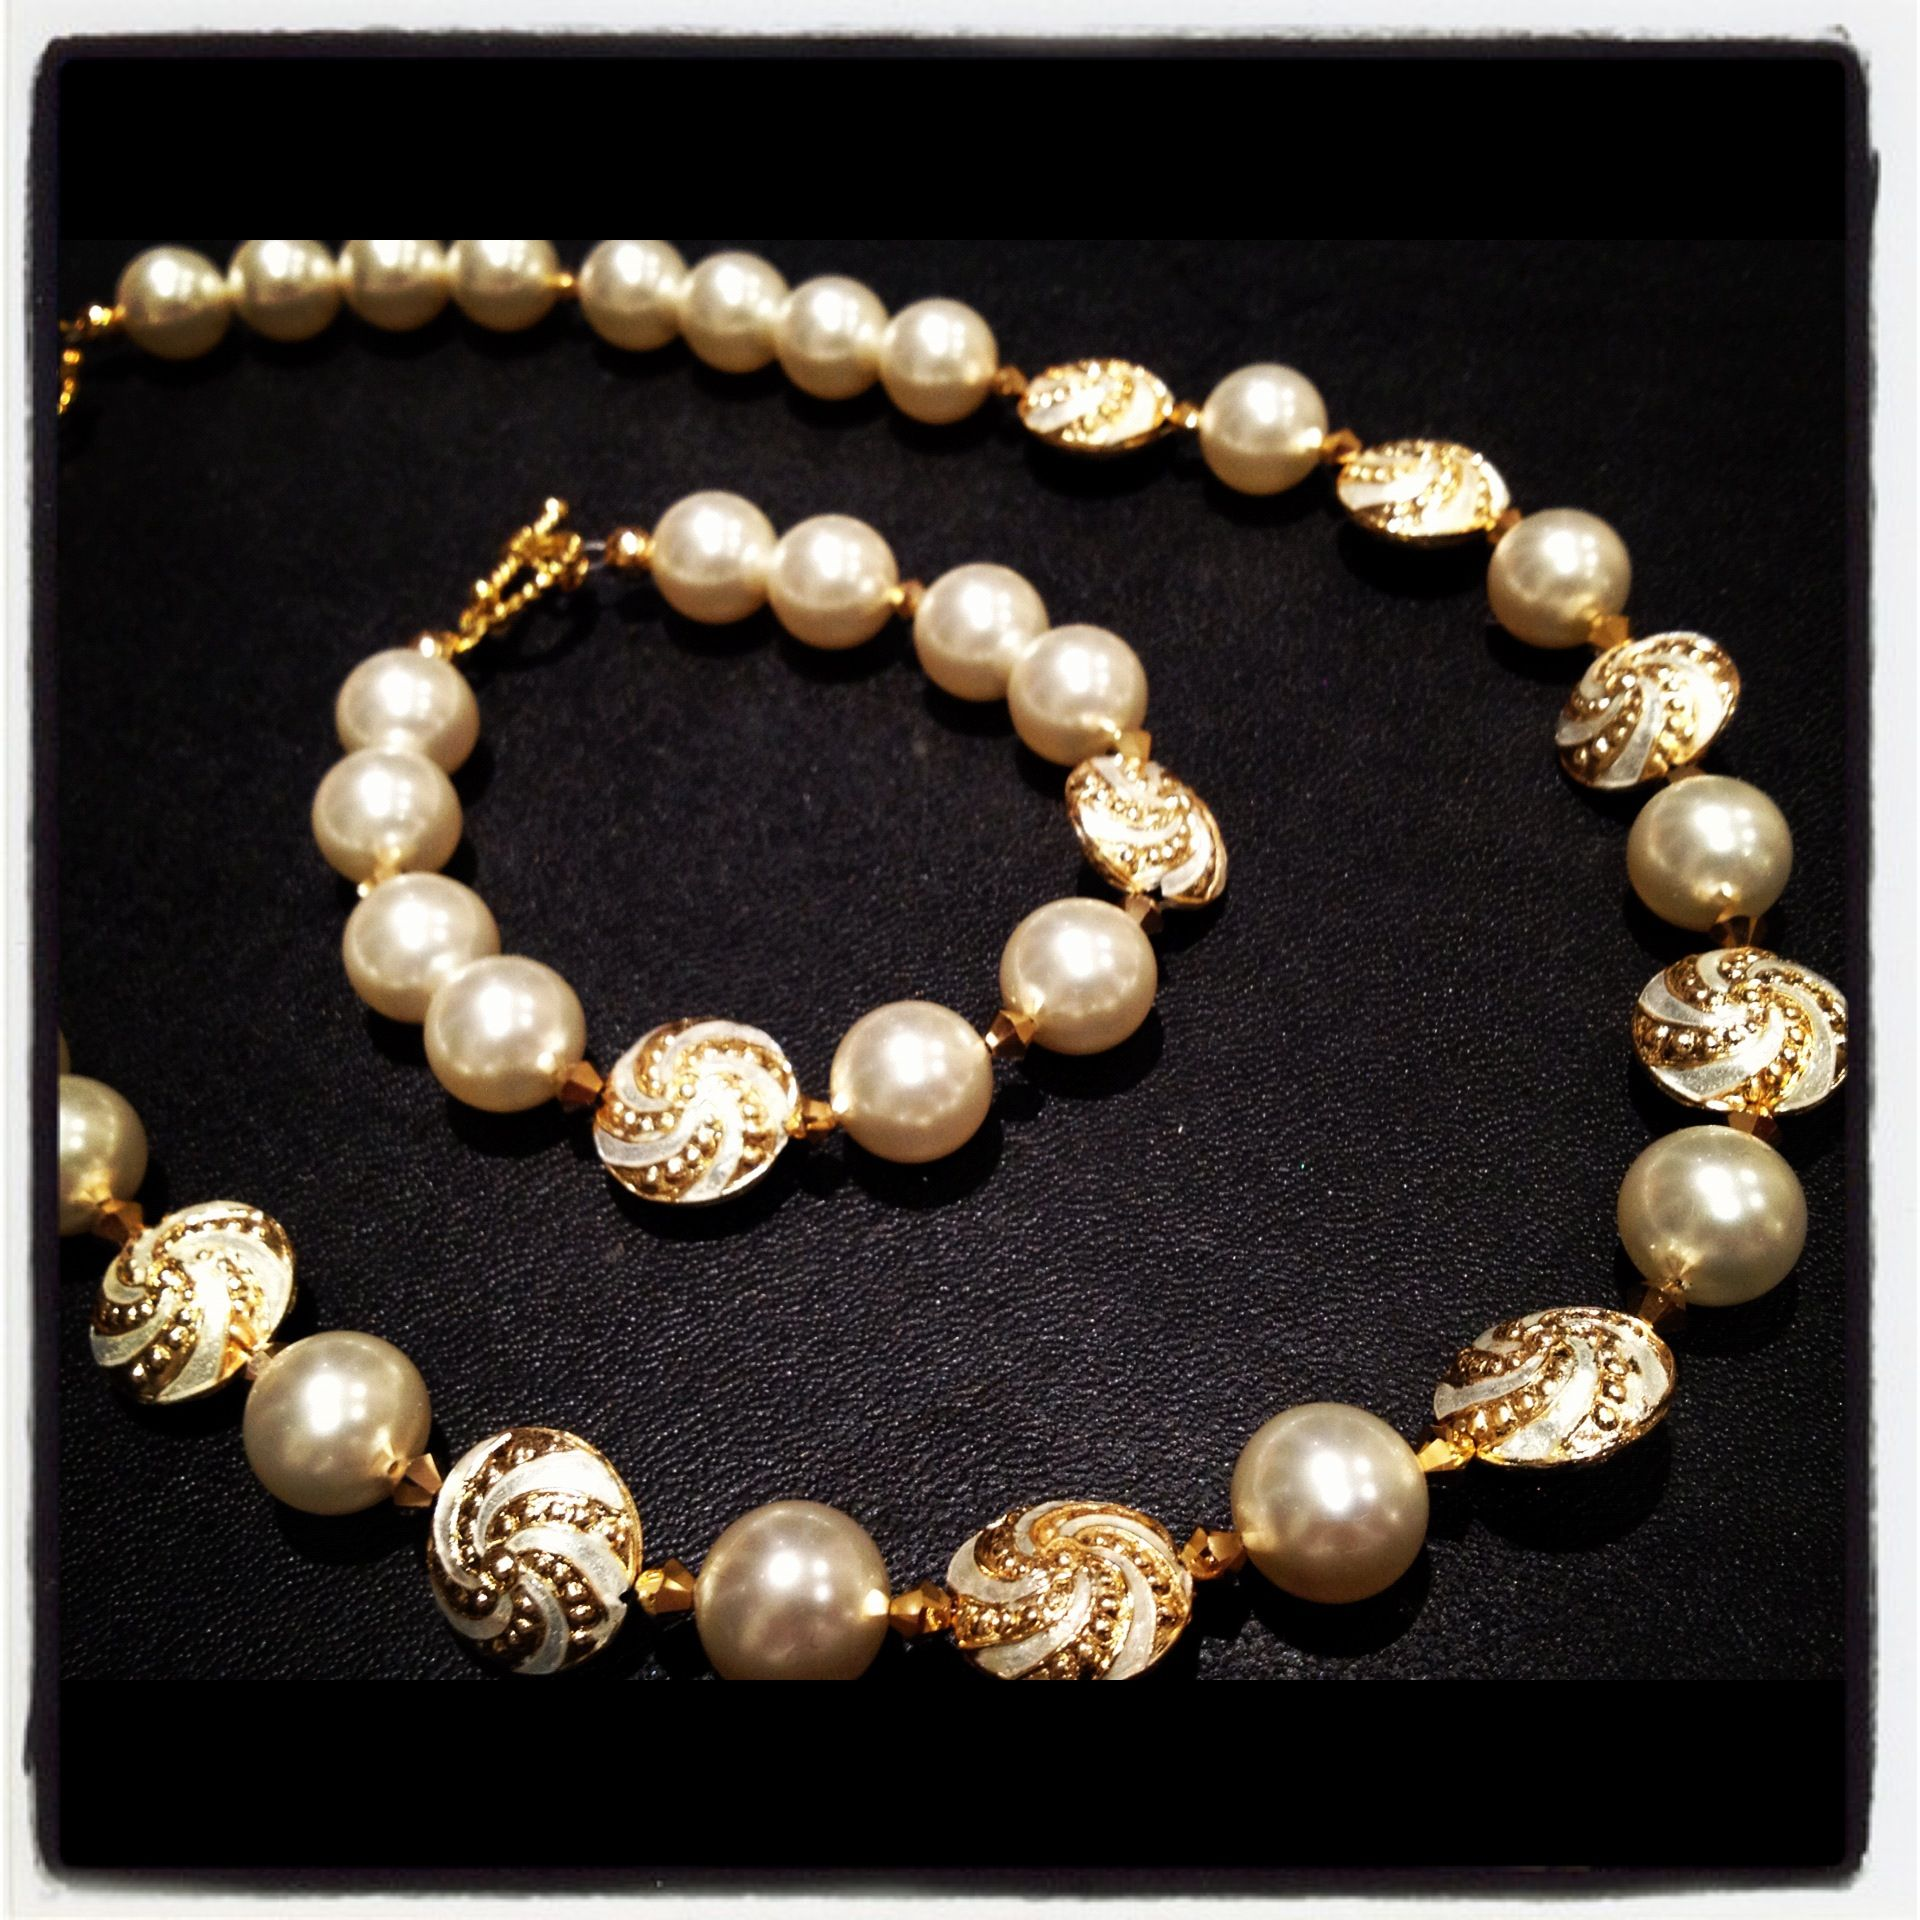 Cream/ Gold Cloisonné beads with Swarovski crystals and pearls. Necklace/ Bracelet set.